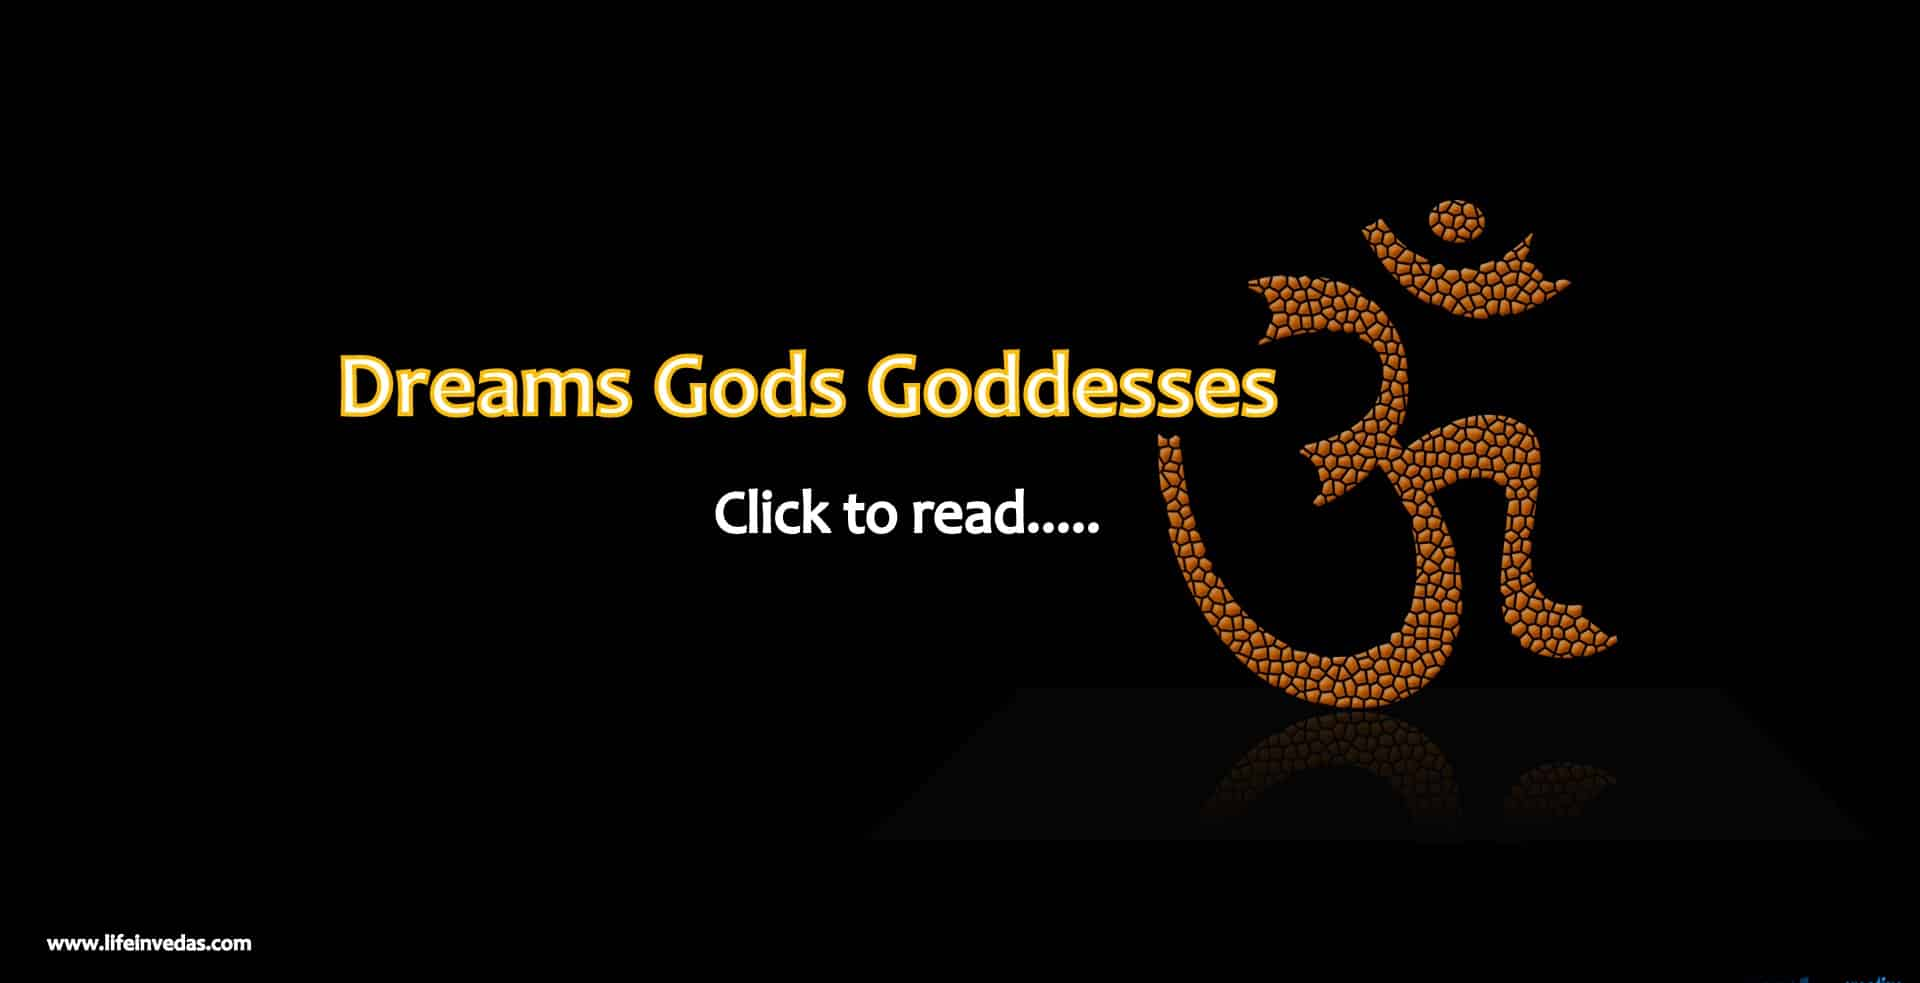 Dreams Gods Goddesses, God Idol, Ram, Krishna, Lakshmi, Genesha